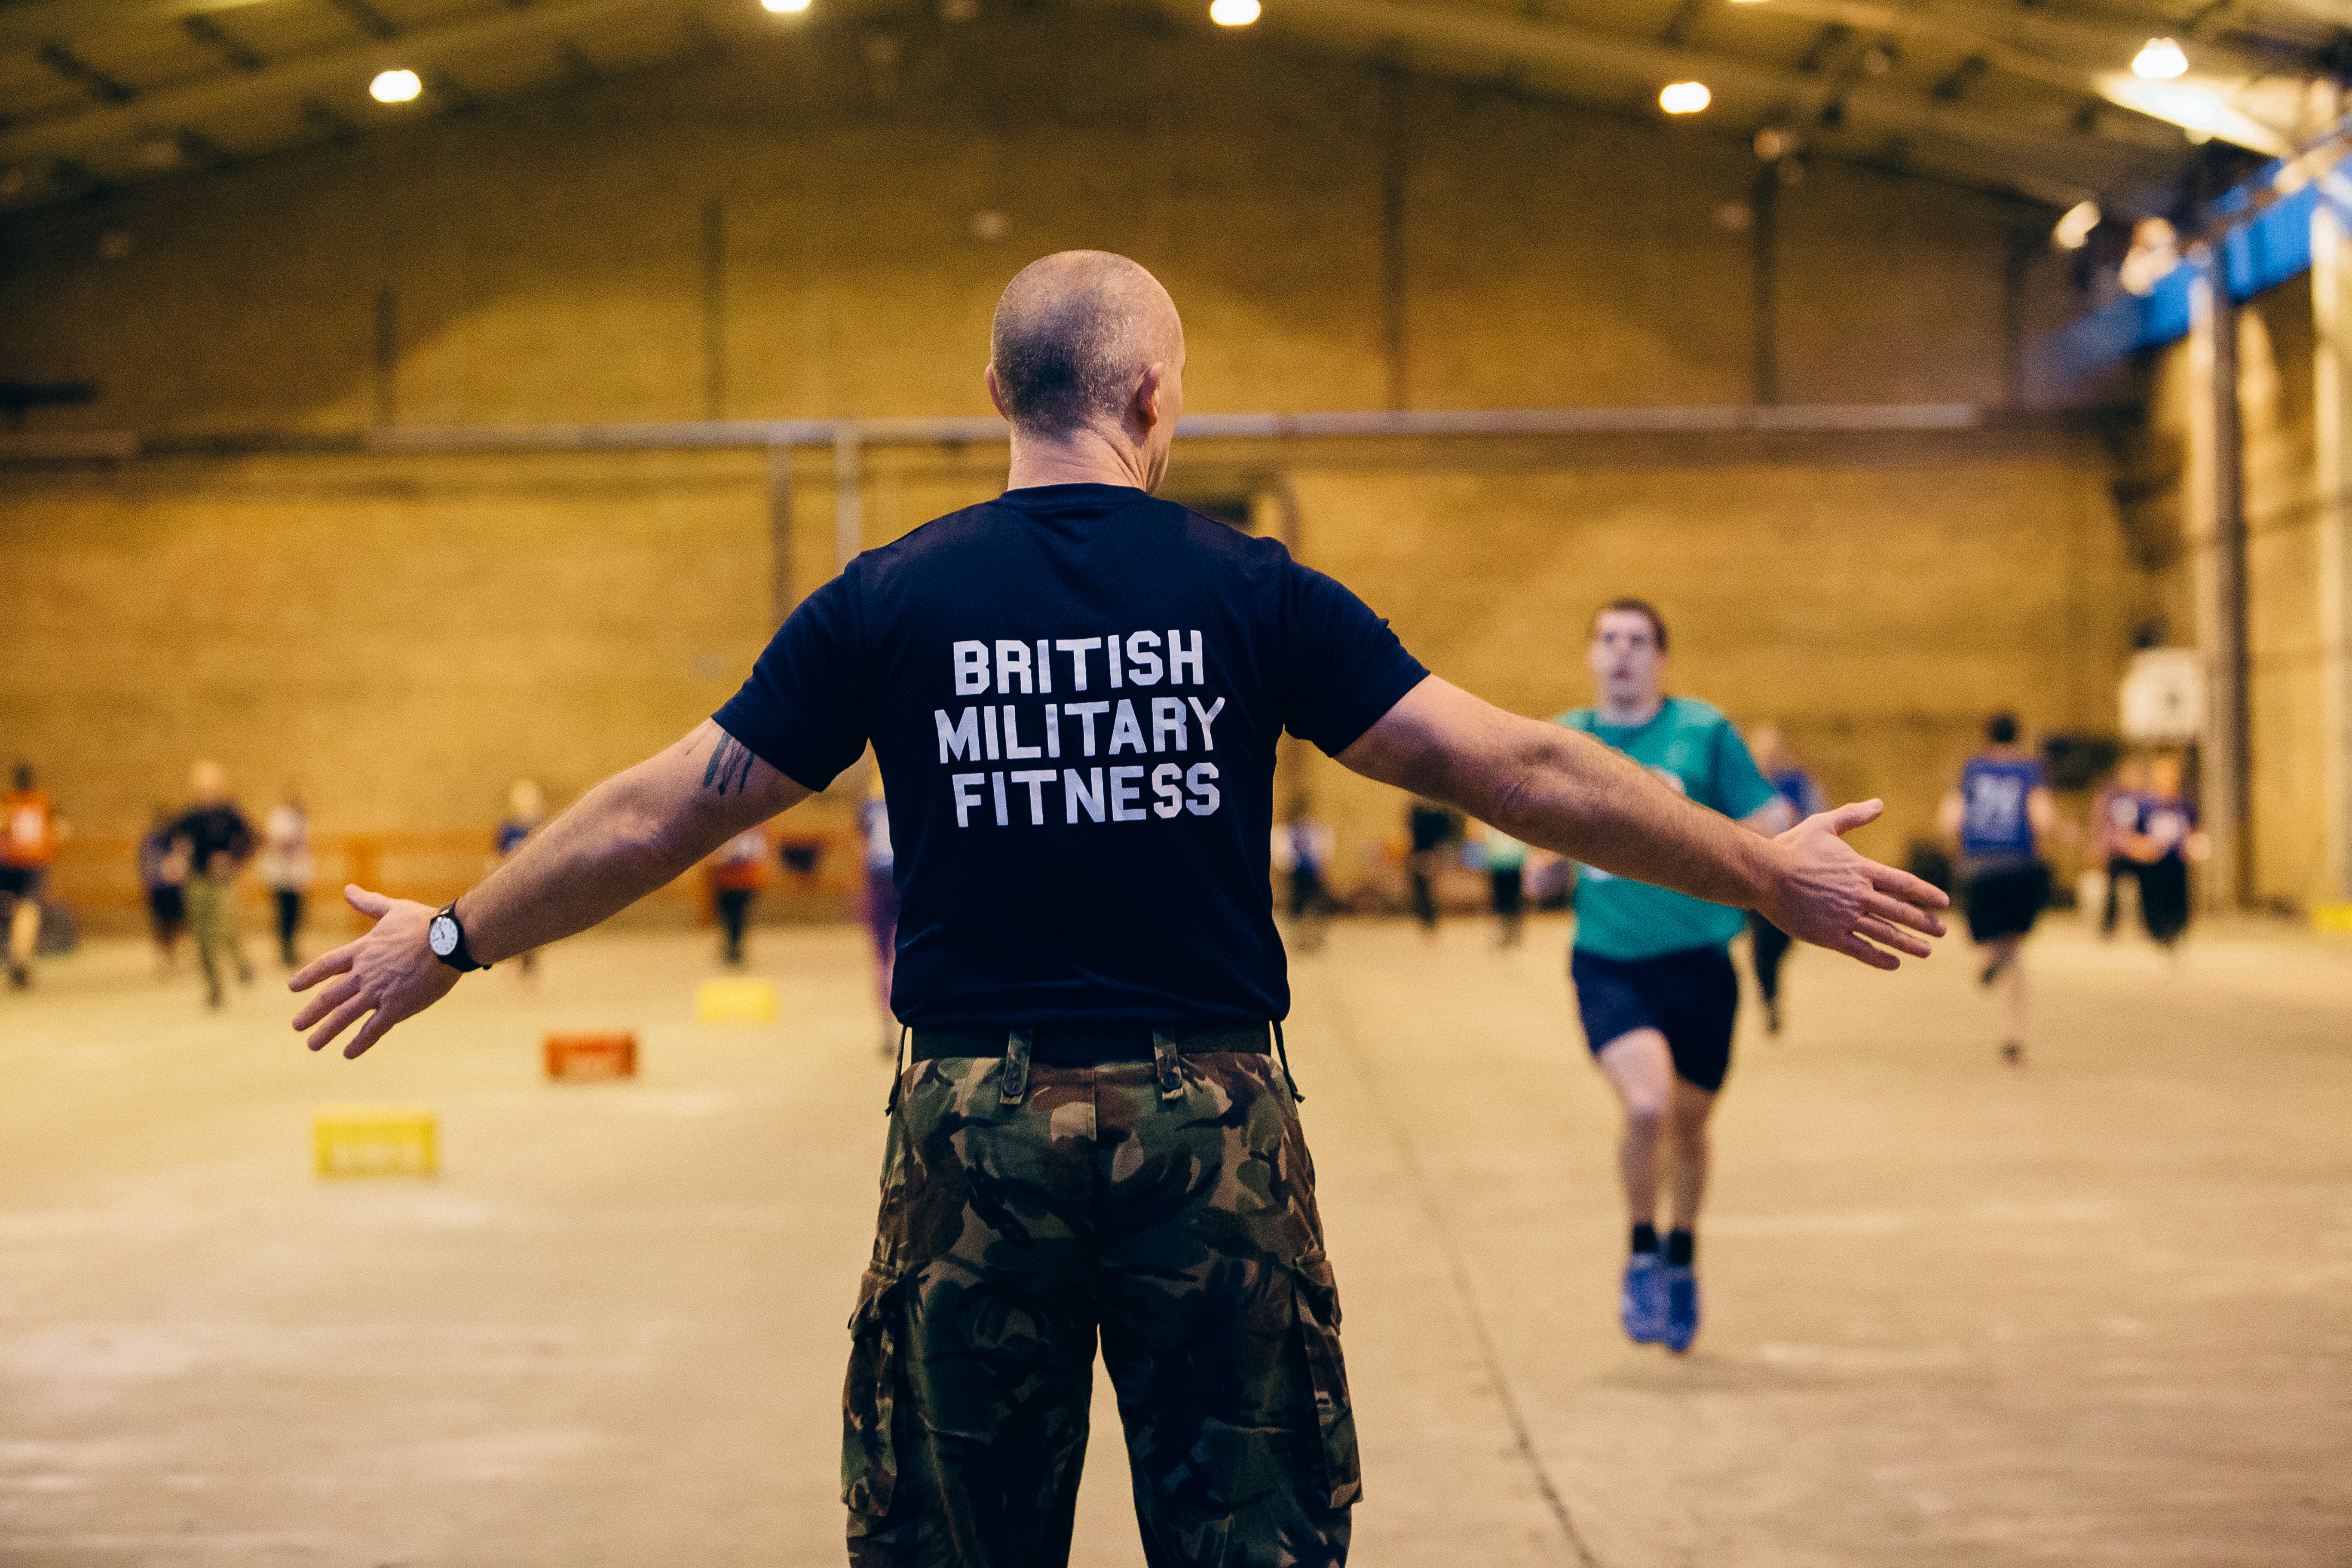 BMF will be expanding its concept of fun filled fitness sessions into workplaces across the country